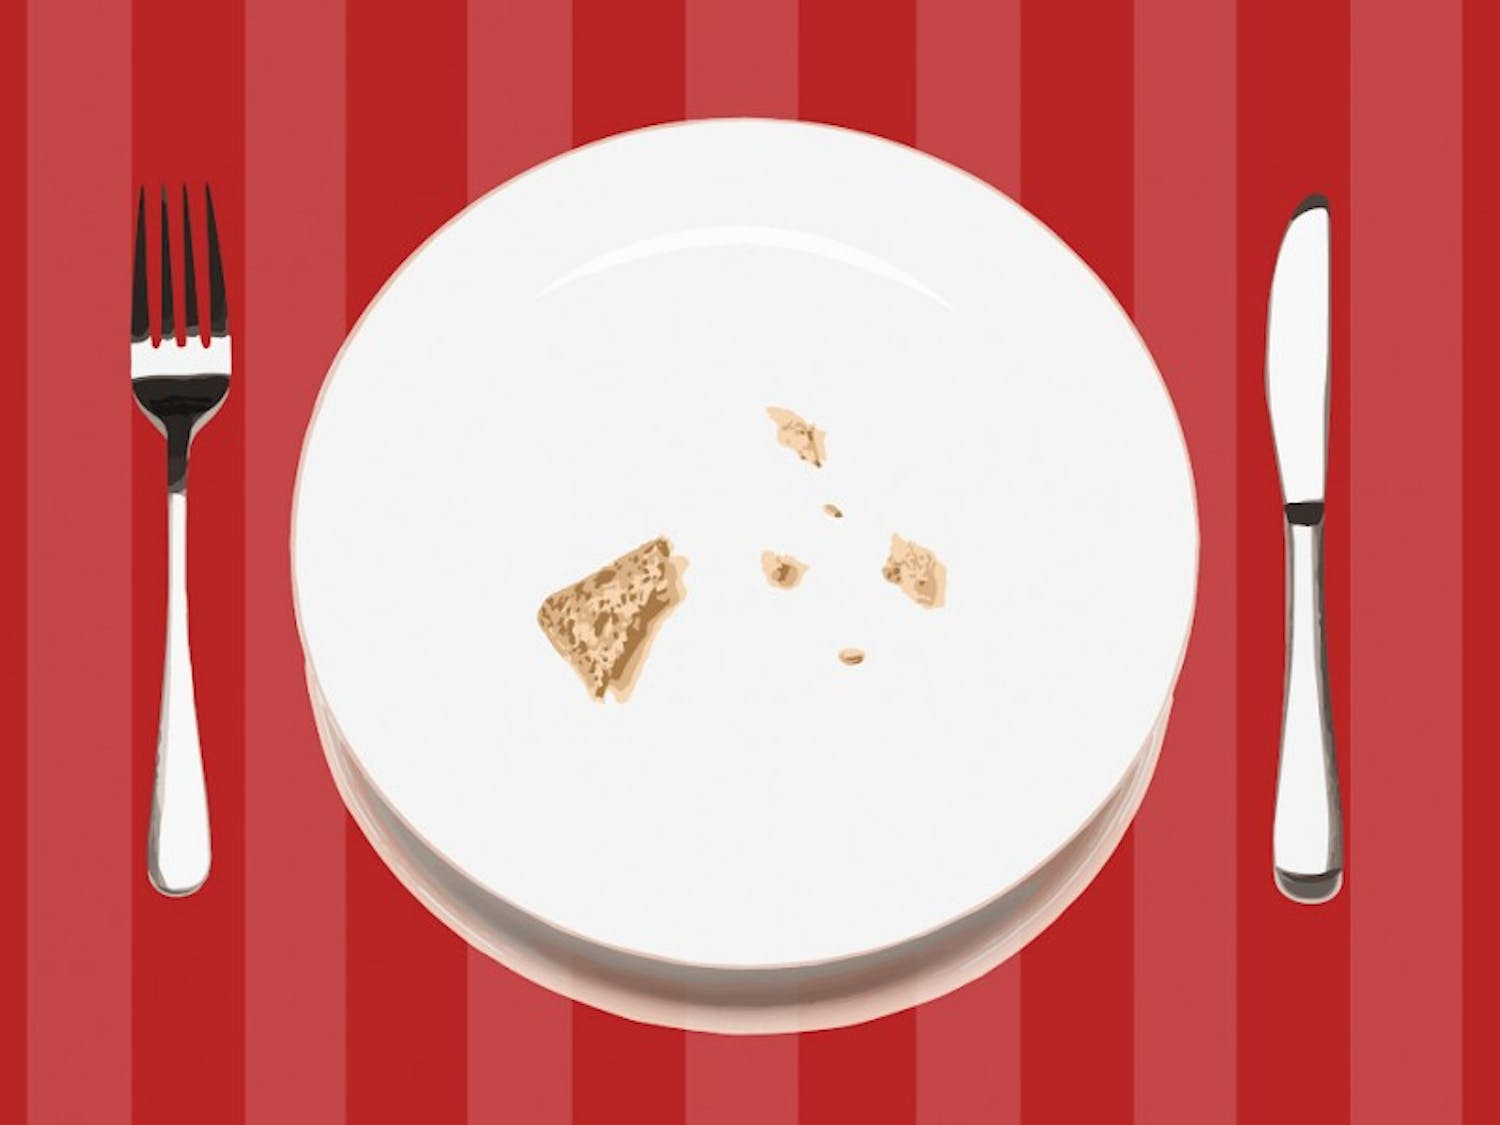 Empty plates are negatively affecting UW-Madison students' physical and mental health.